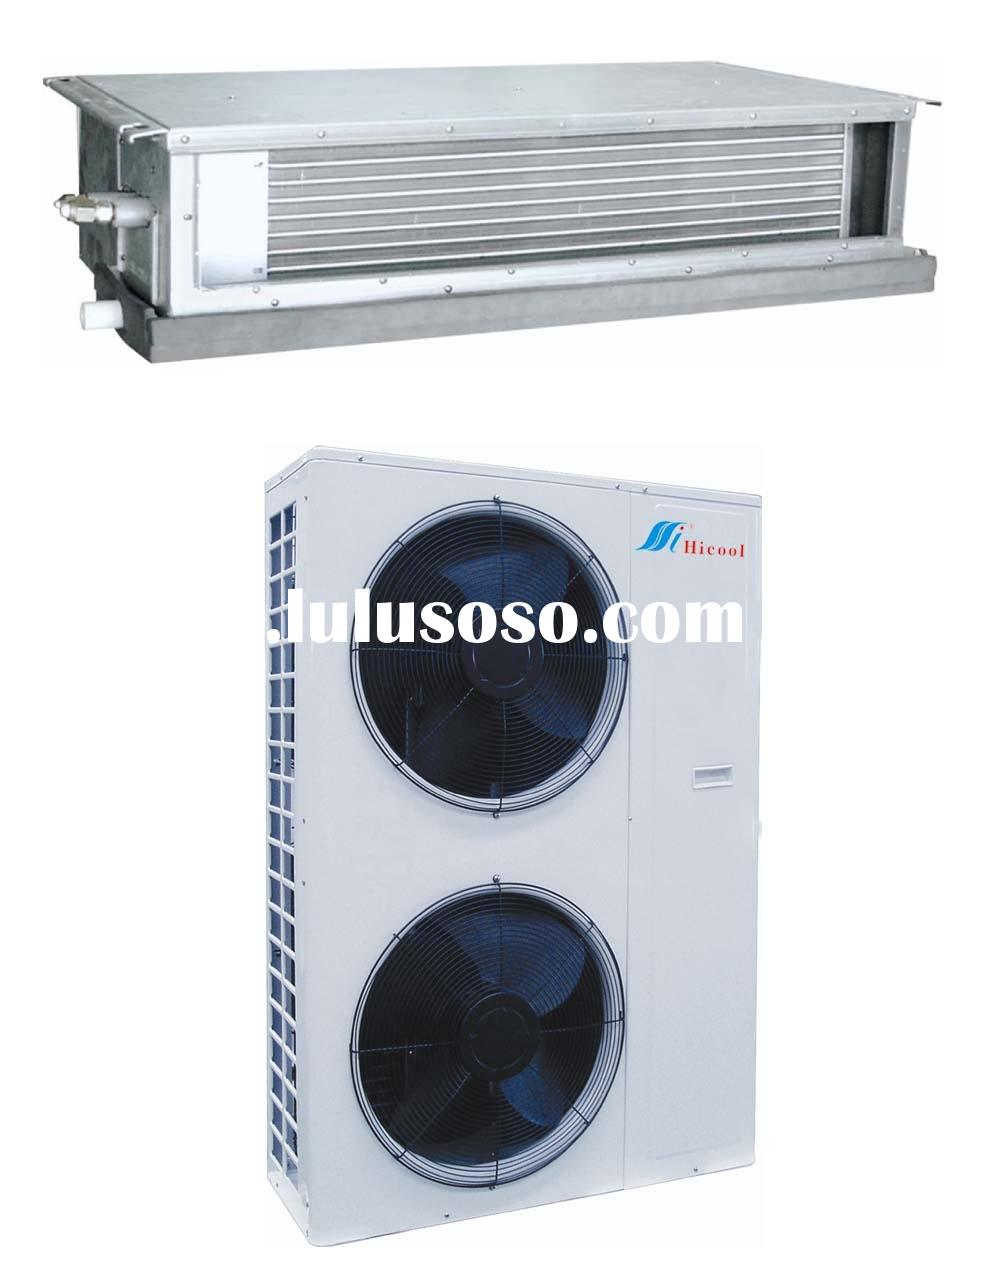 Low Static Pressure Duct Unit-commercial air conditioning